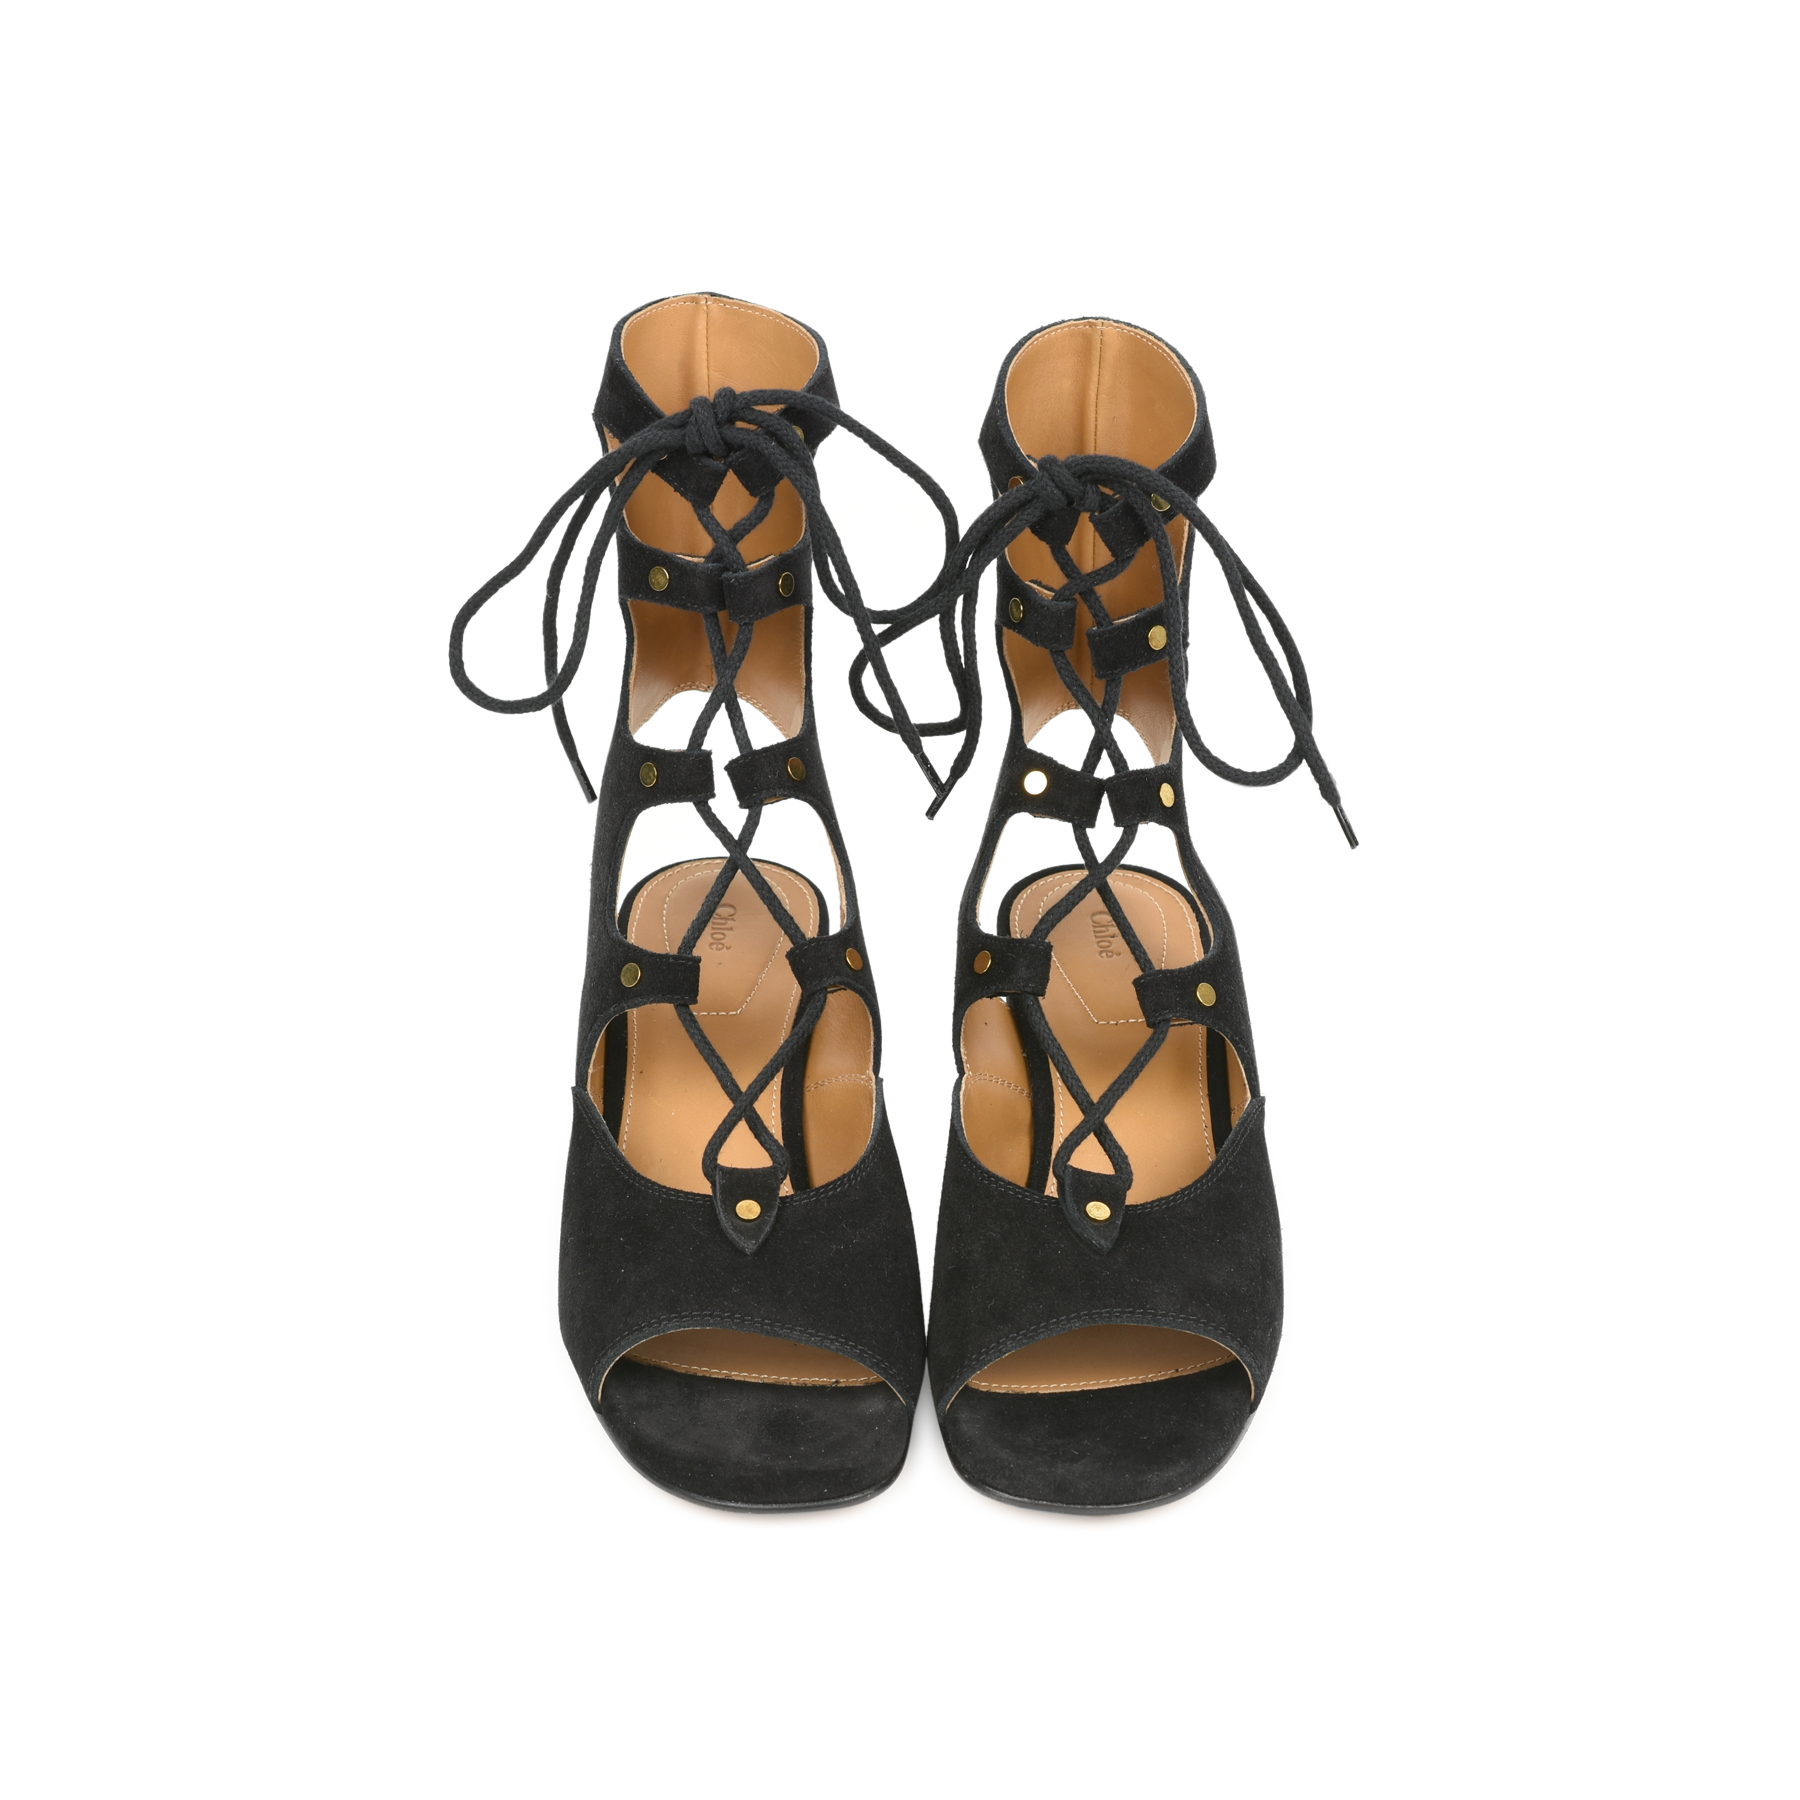 8821ca74279 Authentic Second Hand Chloé Lace up Suede Gladiator Sandals (PSS-057-00028)